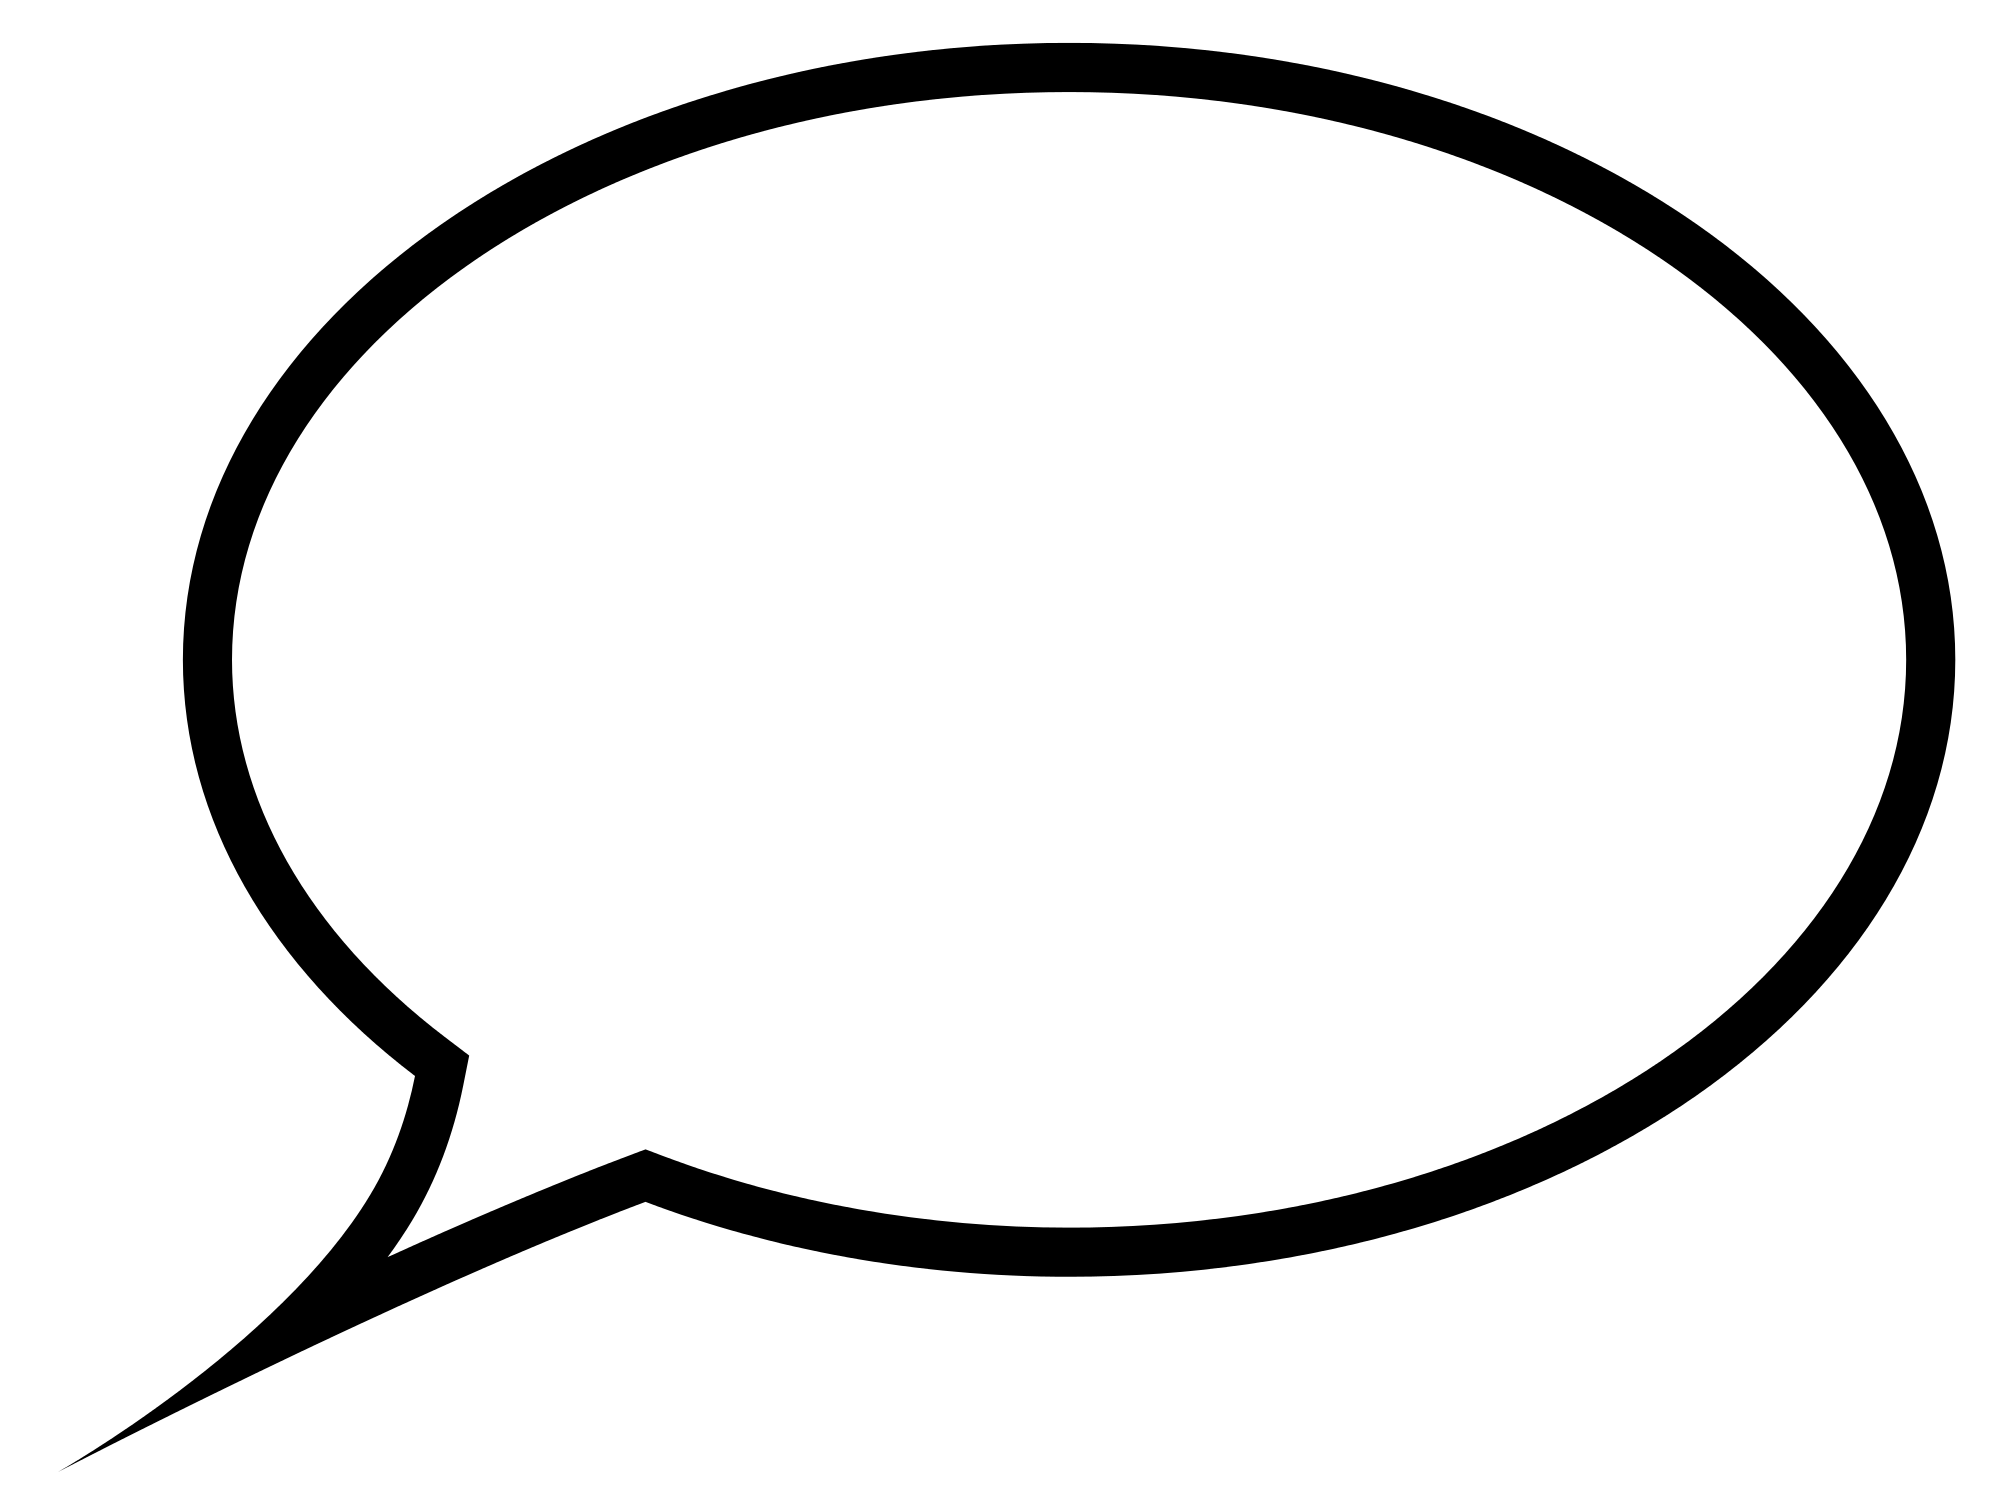 Speech Bubble PNG